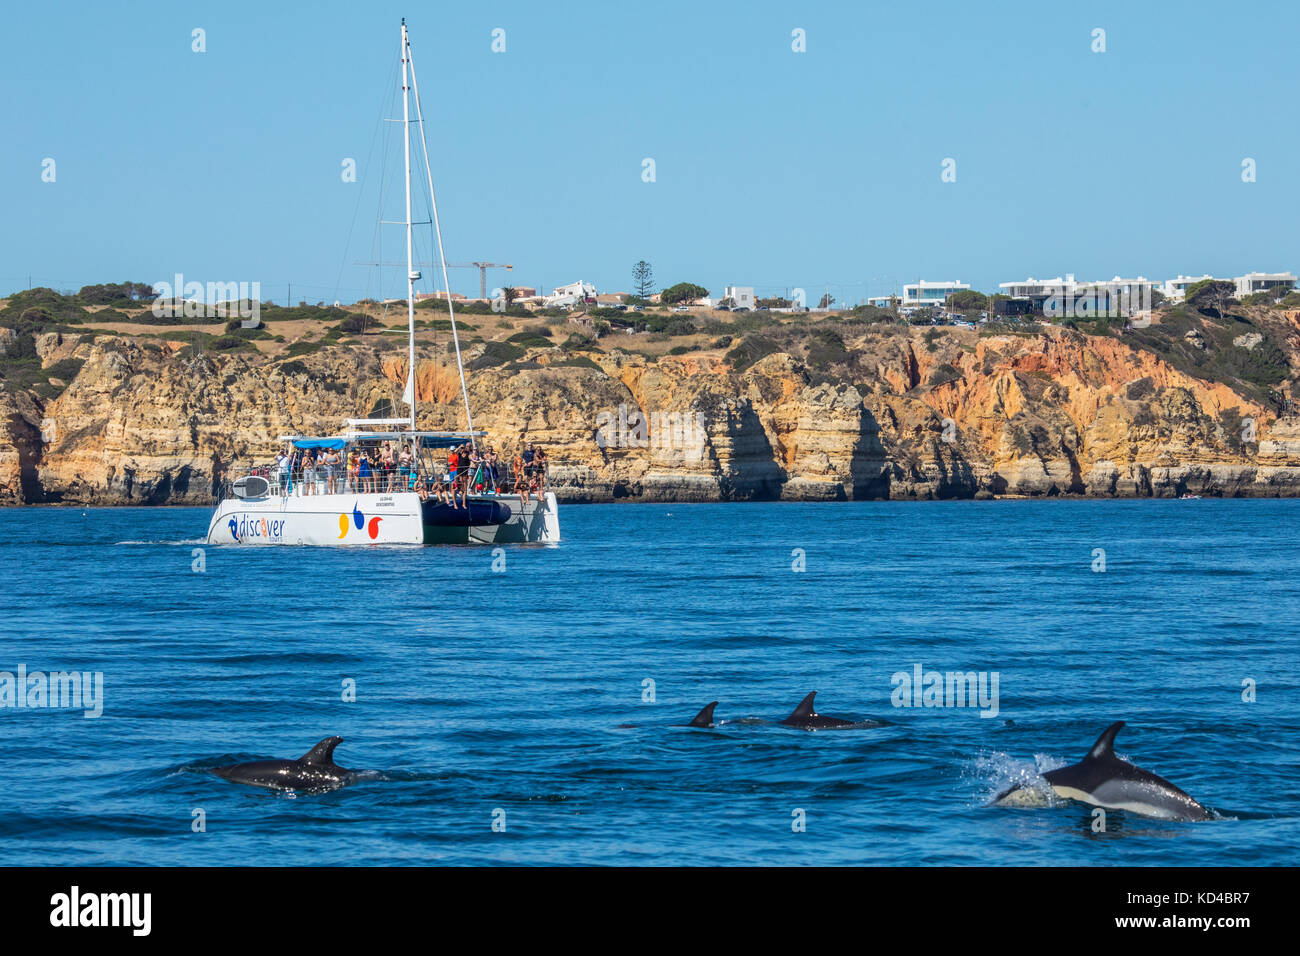 PORTUGAL - SEPTEMBER 12TH 2017: A Dolphin watching boat trip off the coast of Lagos in the Algarve, Portugal, on - Stock Image